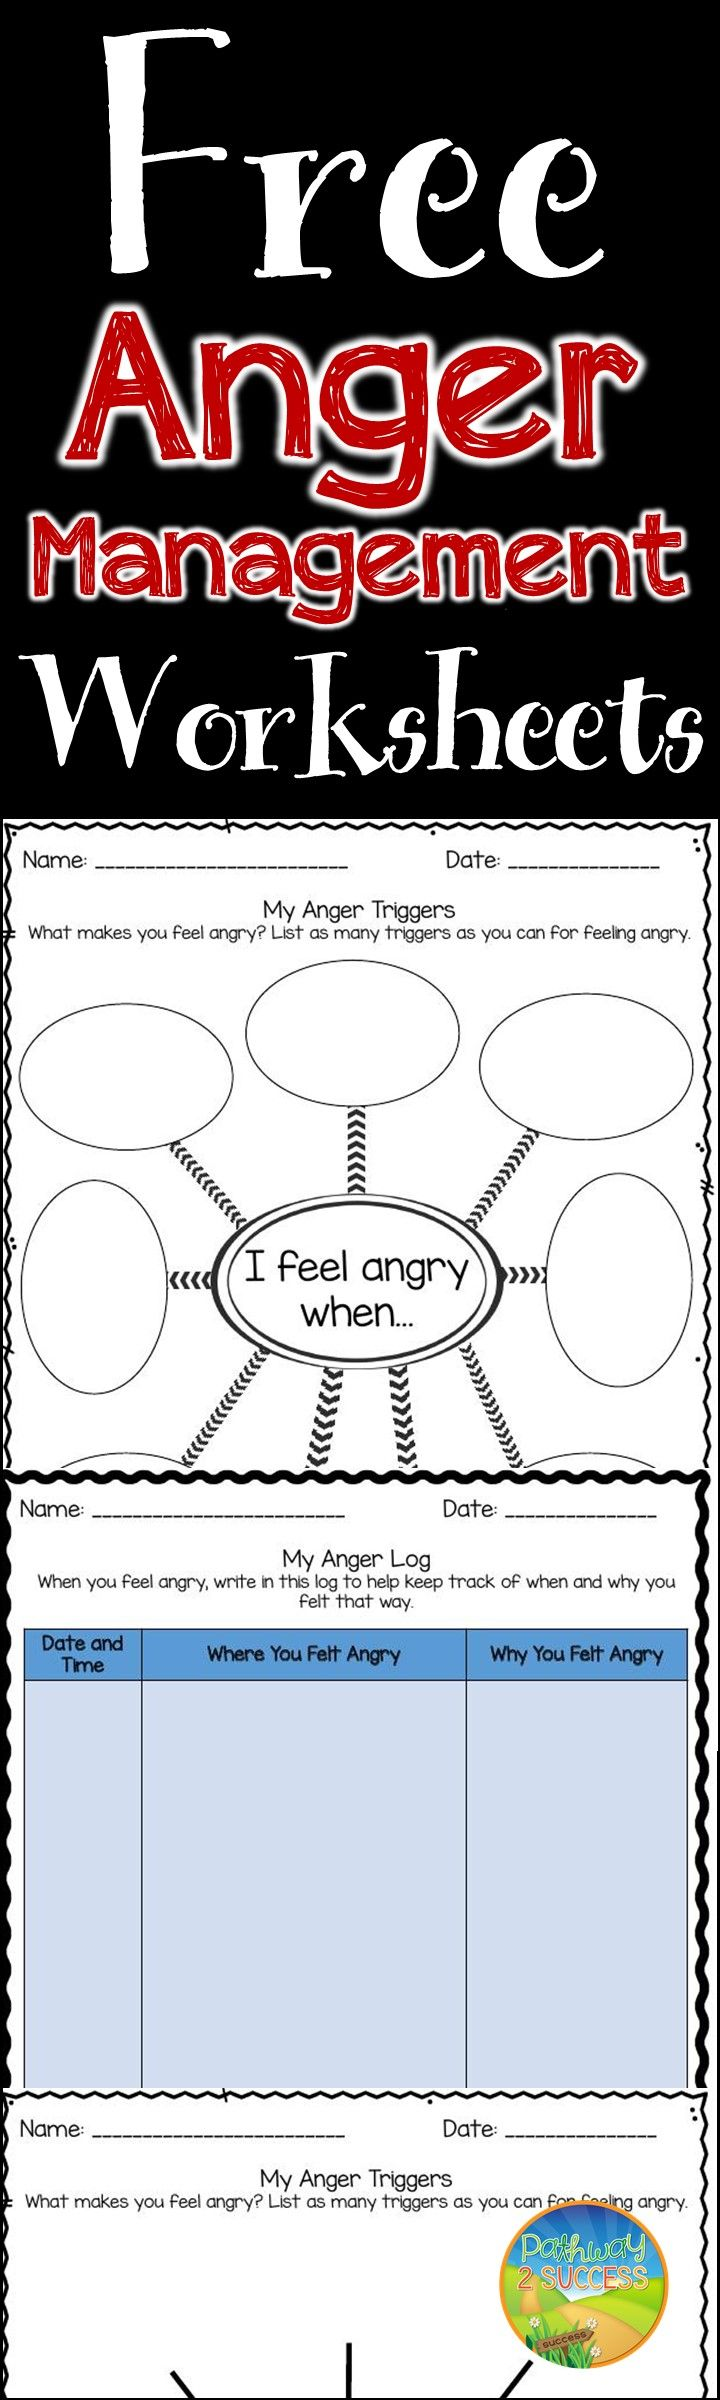 FREE worksheets for anger management skills